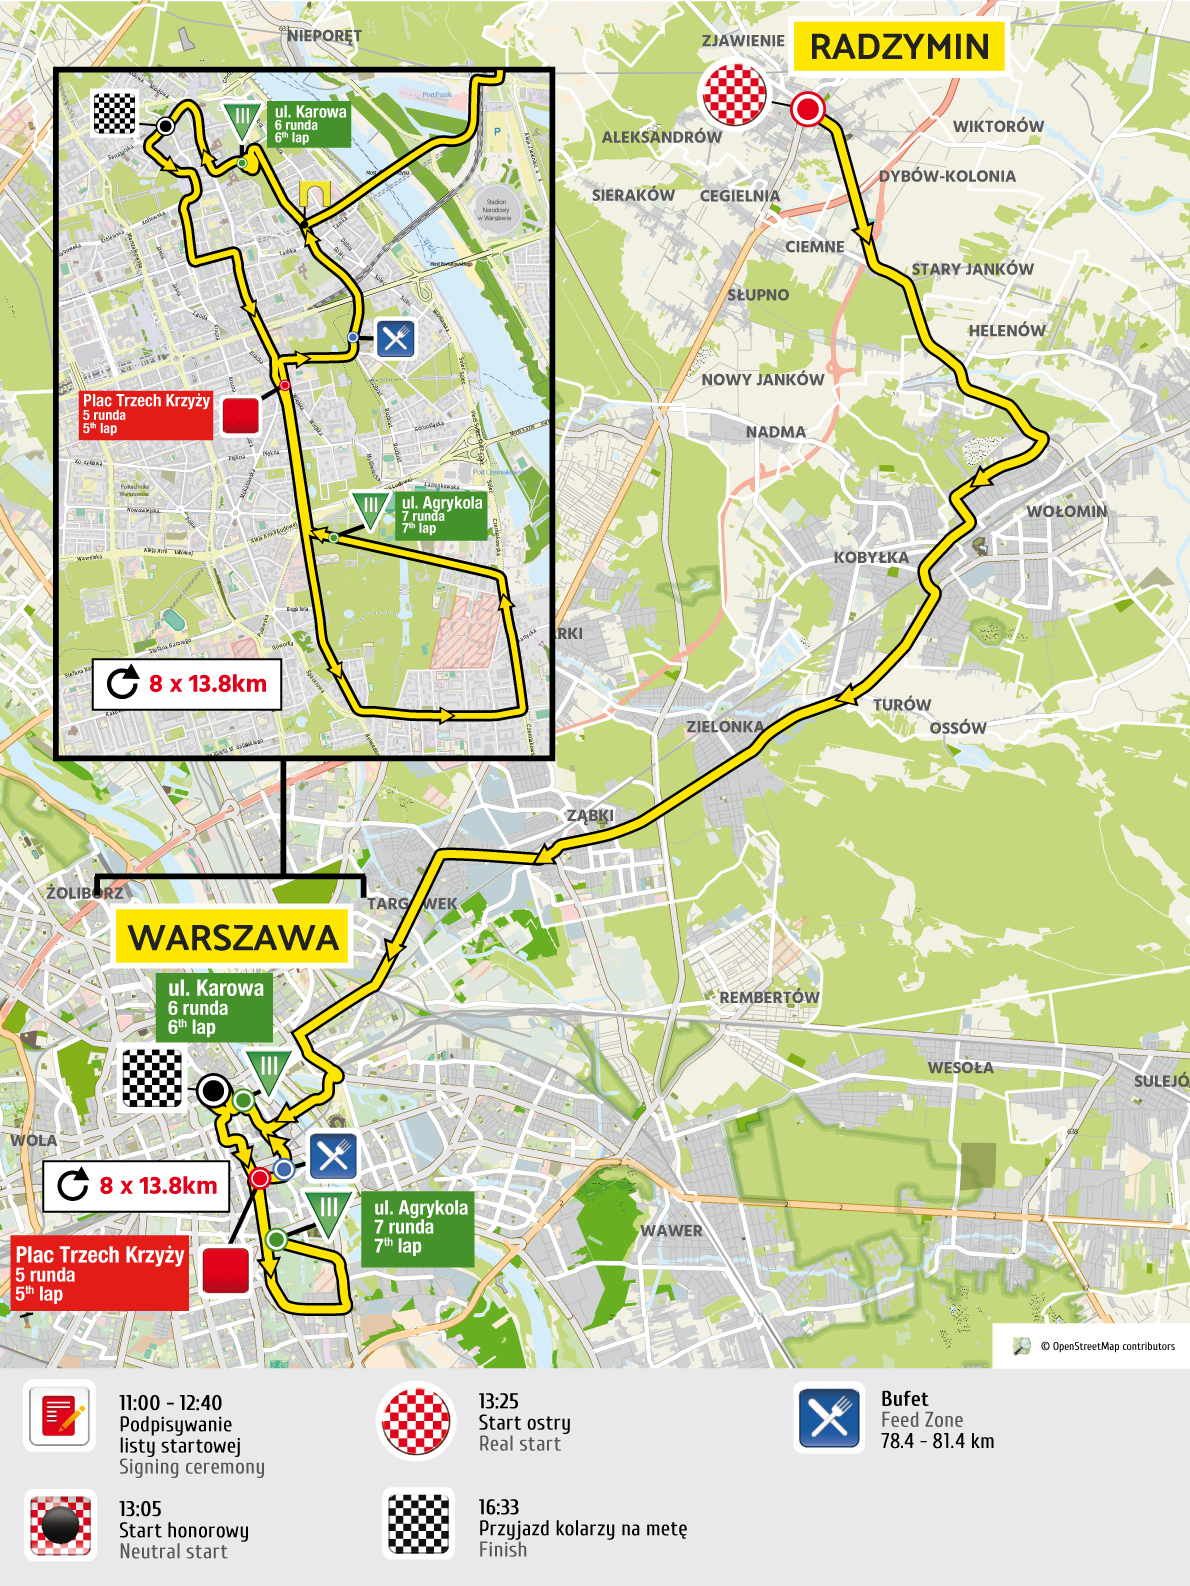 etap 1 mapa Tour de Pologne 2016 UCI World Tour